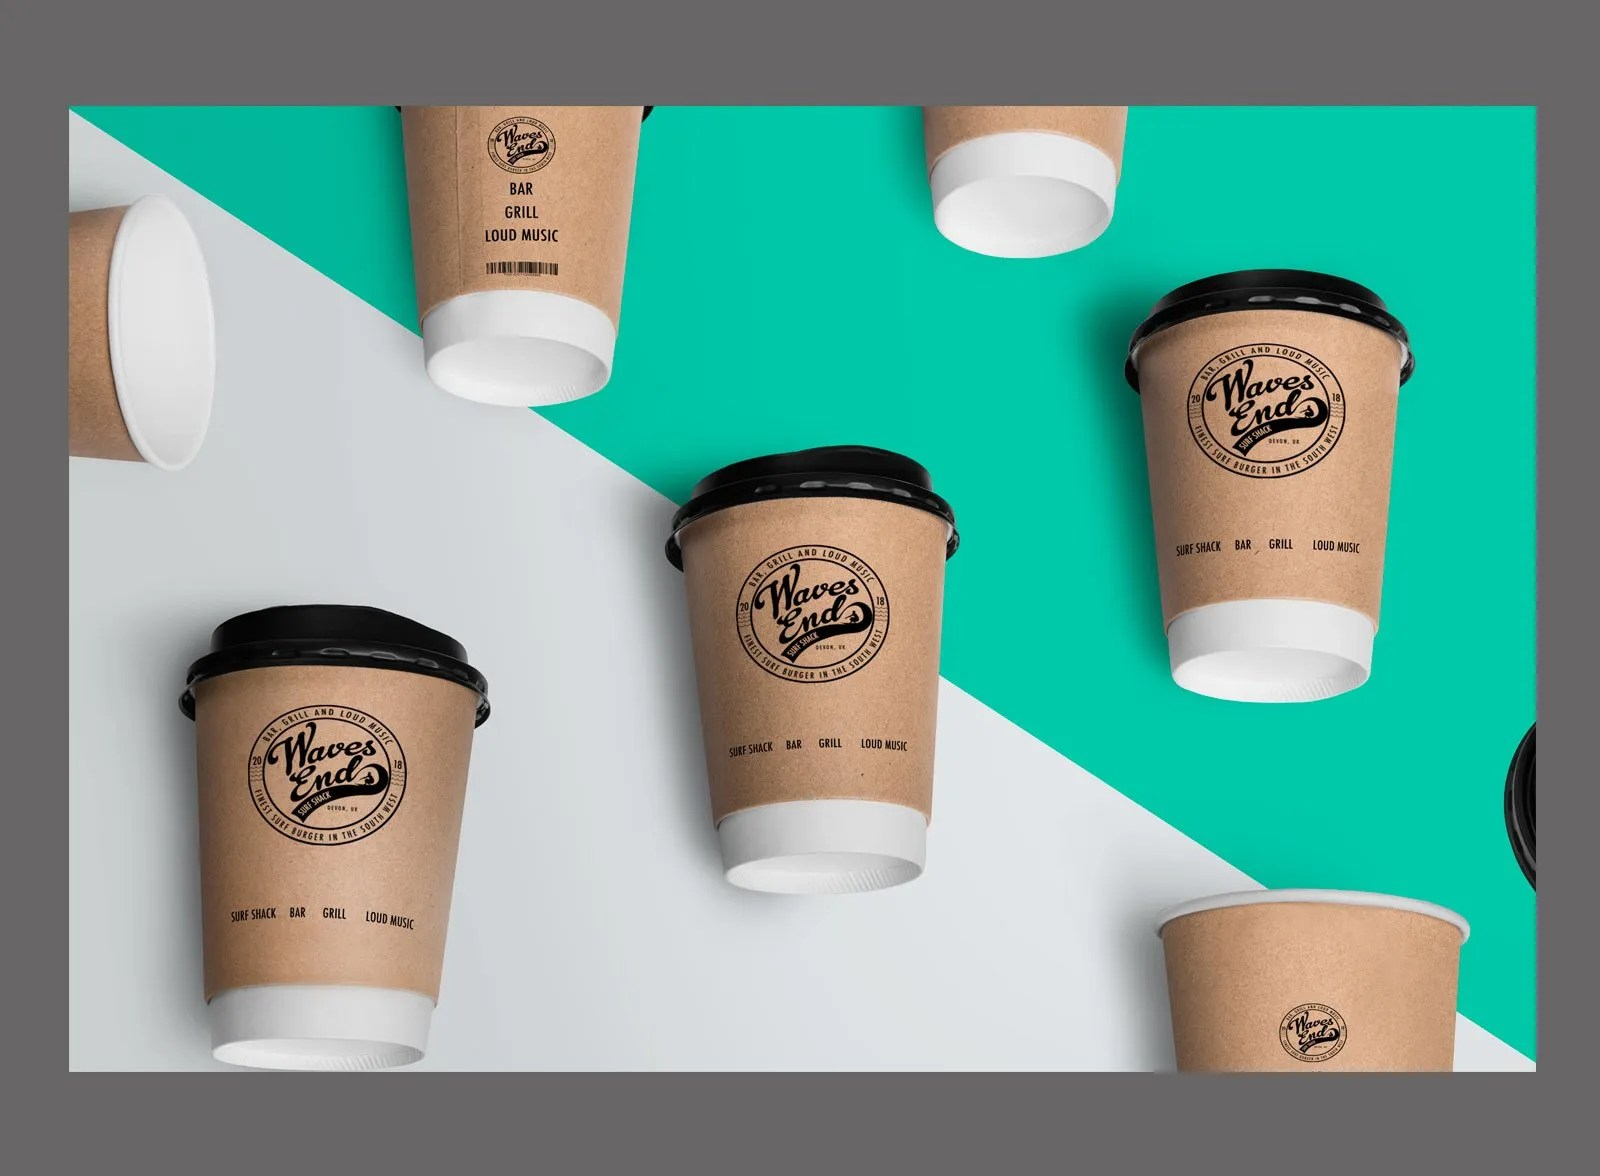 Waves End Branded Coffee Cup | Elements Brand Management